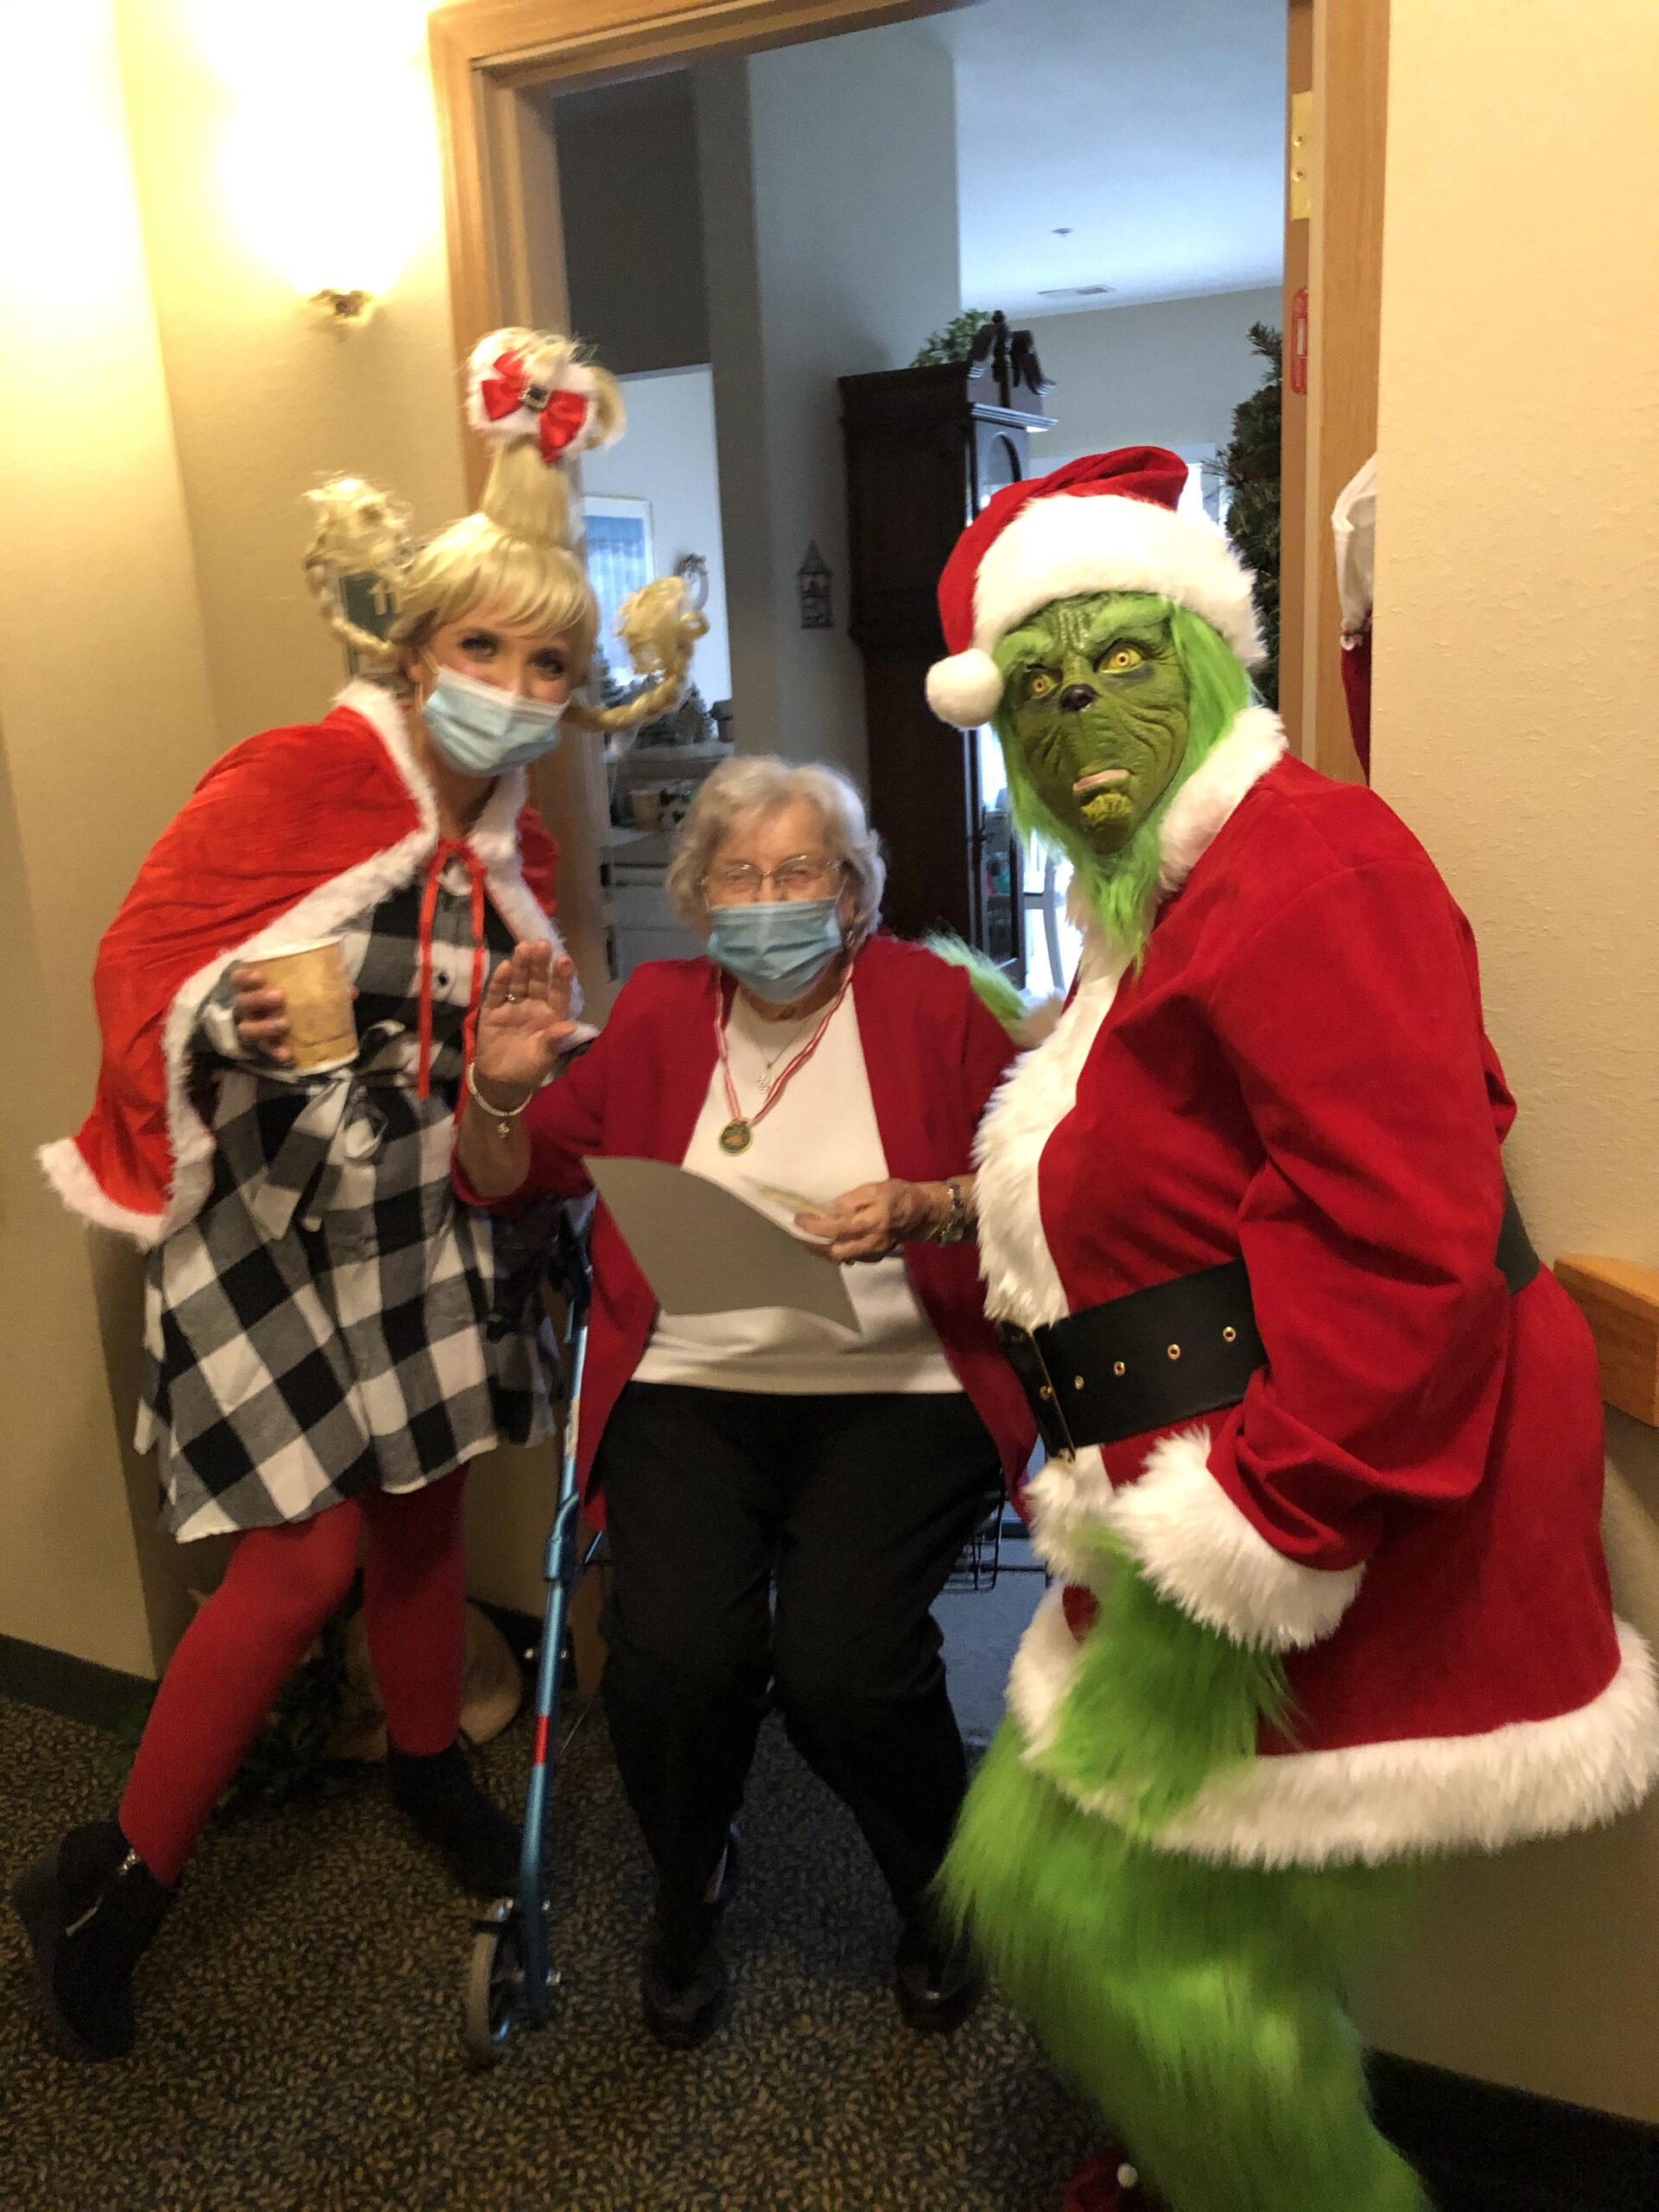 Jemmy was a bit suprised to see The Grinch and Cindy Lou Who at her door